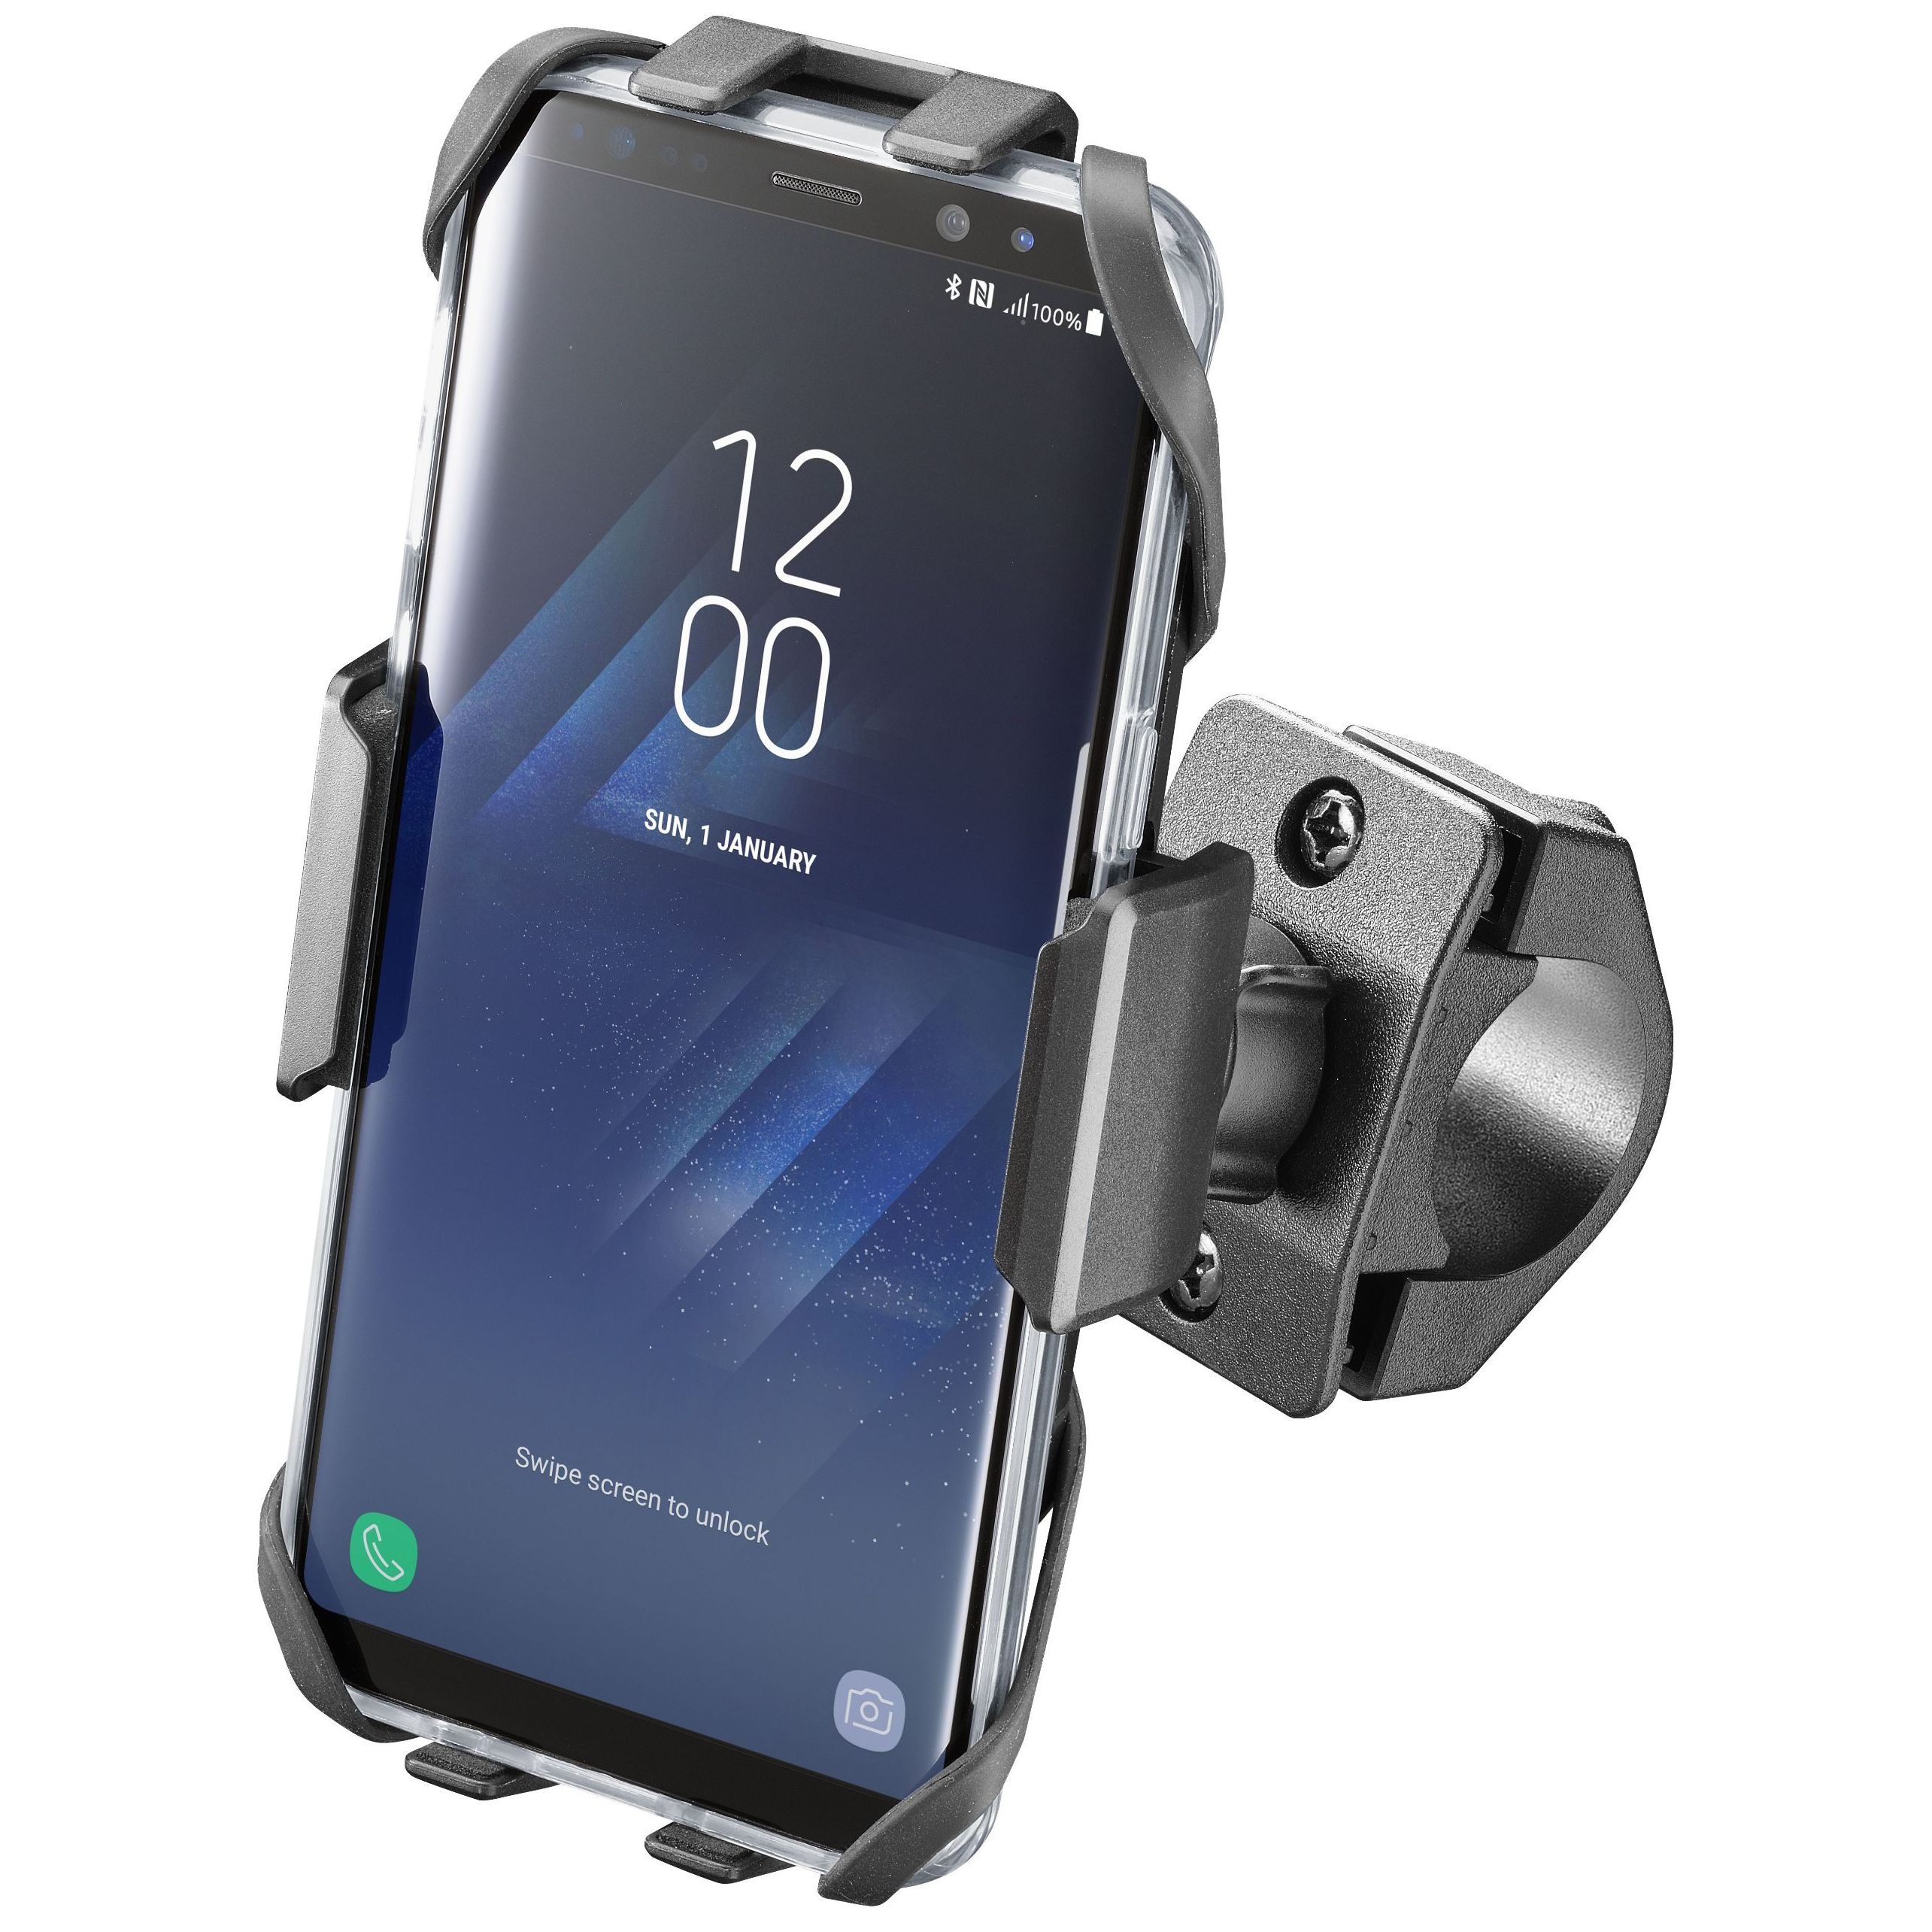 Coque de protection Cellular line COQUE SMARTPHONE AVEC SUPPORT MOTO CRAB